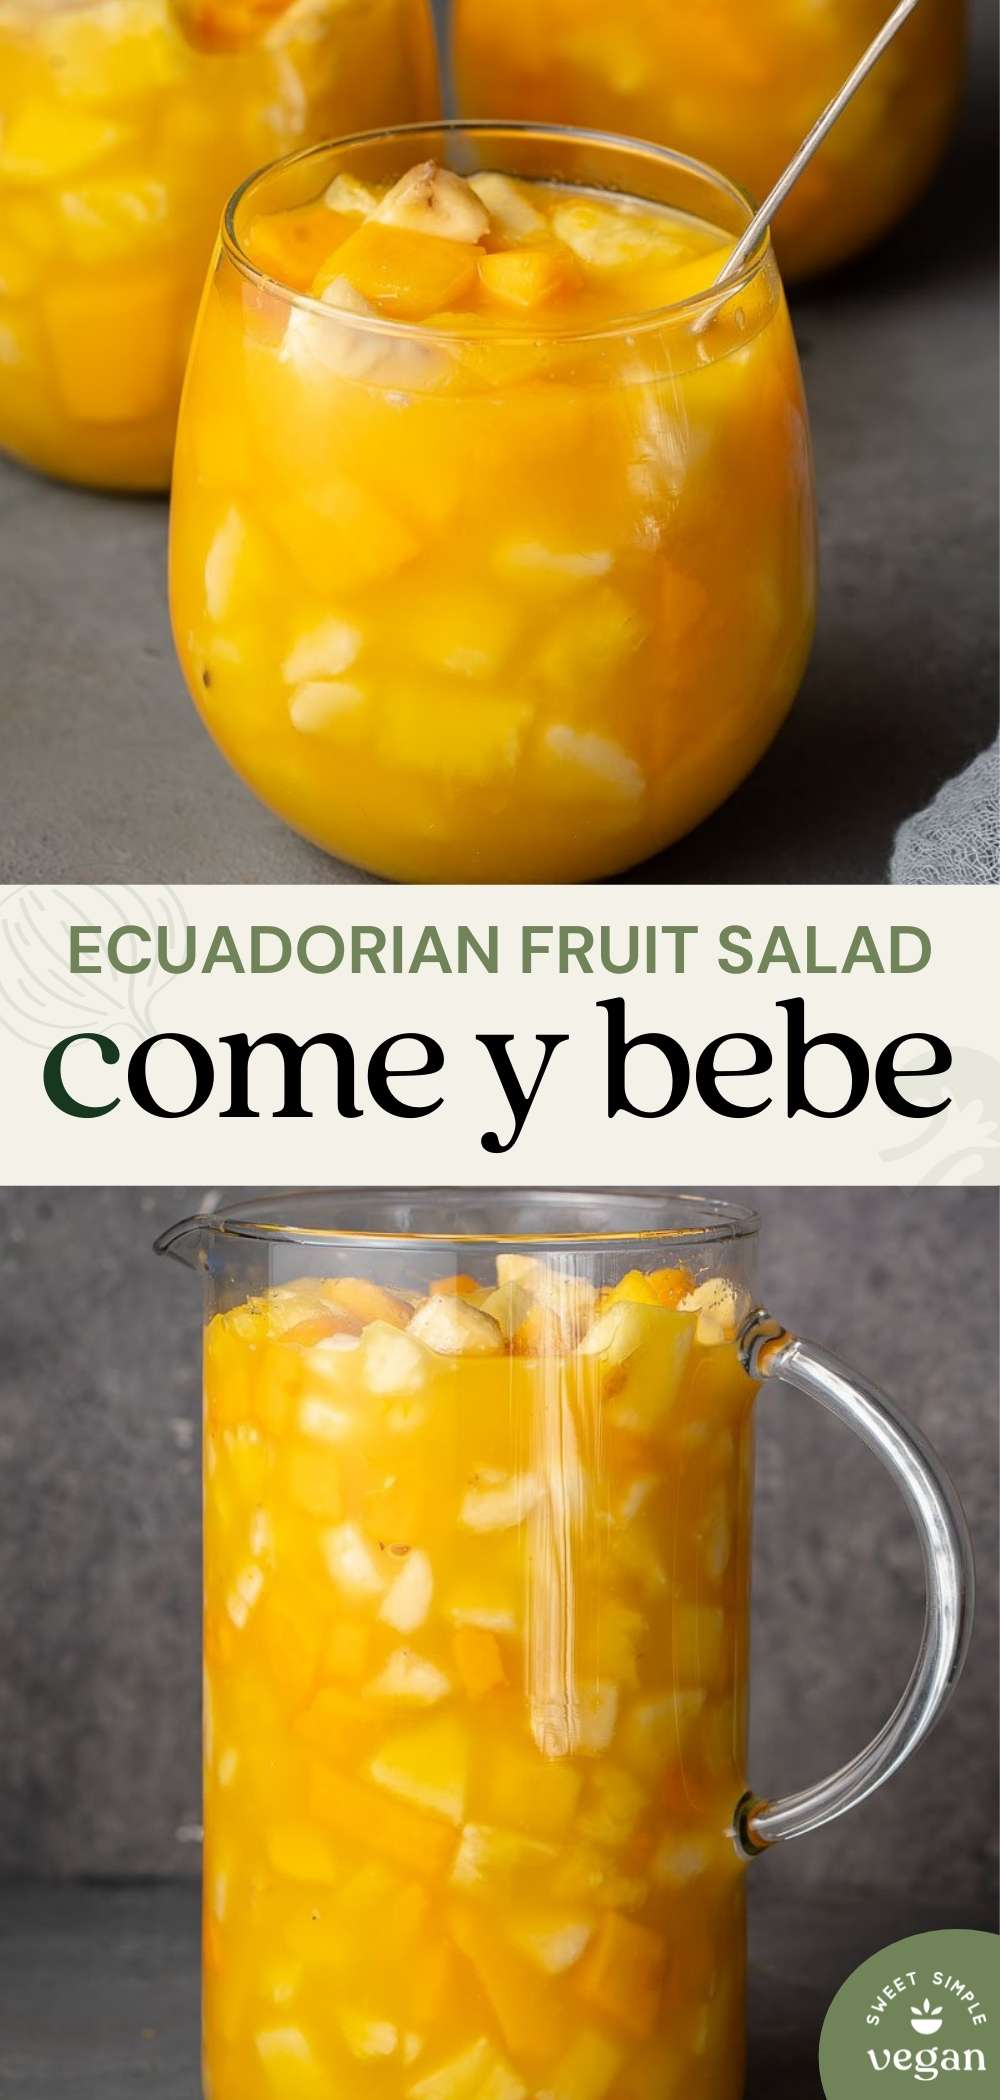 glass and pitcher of come y bebe ecuadorian fruit salad for pinterest